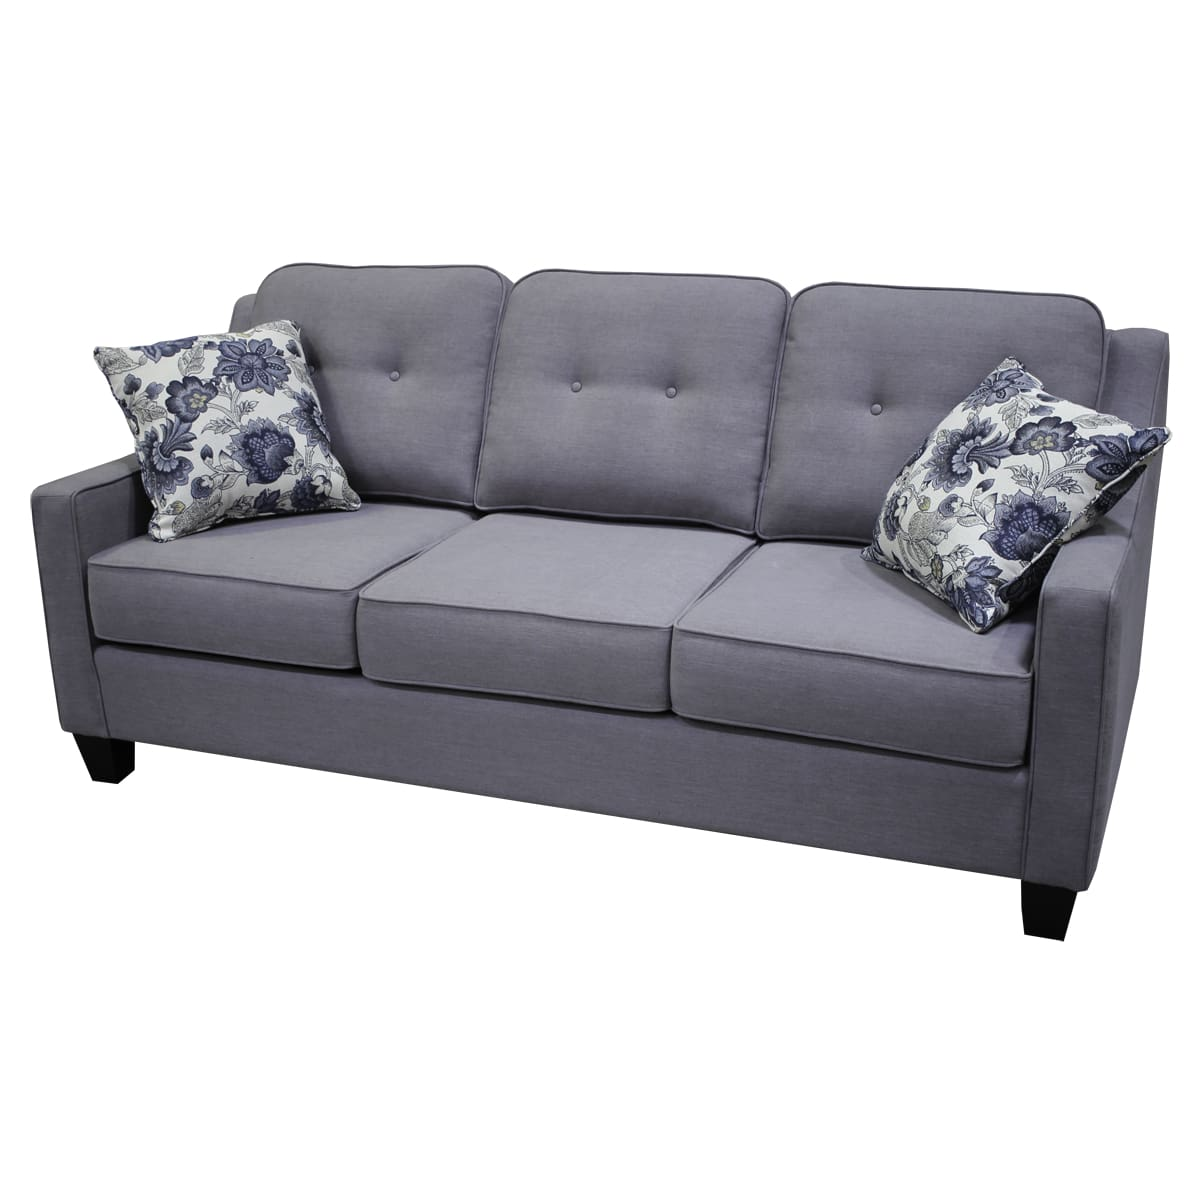 Hilton Sofabed - Sofabed